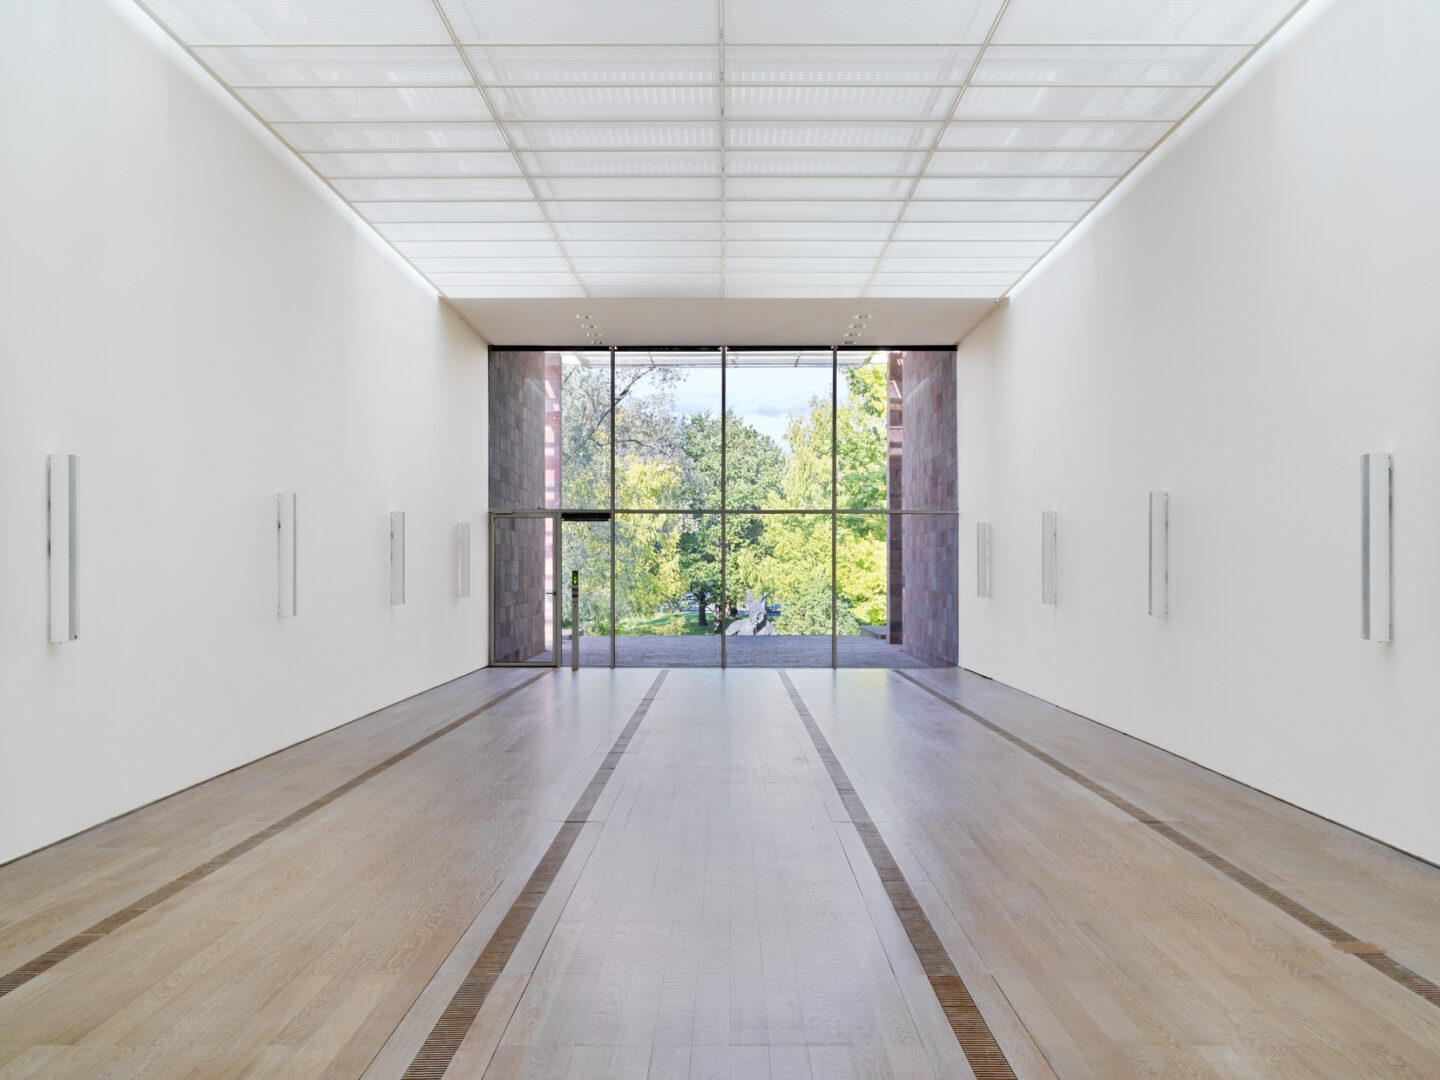 Exhibition View Groupshow «Resonating Spaces; view on Susan Philipsz» at Fondation Beyeler, Riehen, 2019 / Photo: Stefan Altenburger / Courtesy: the artist and Fondation Beyeler